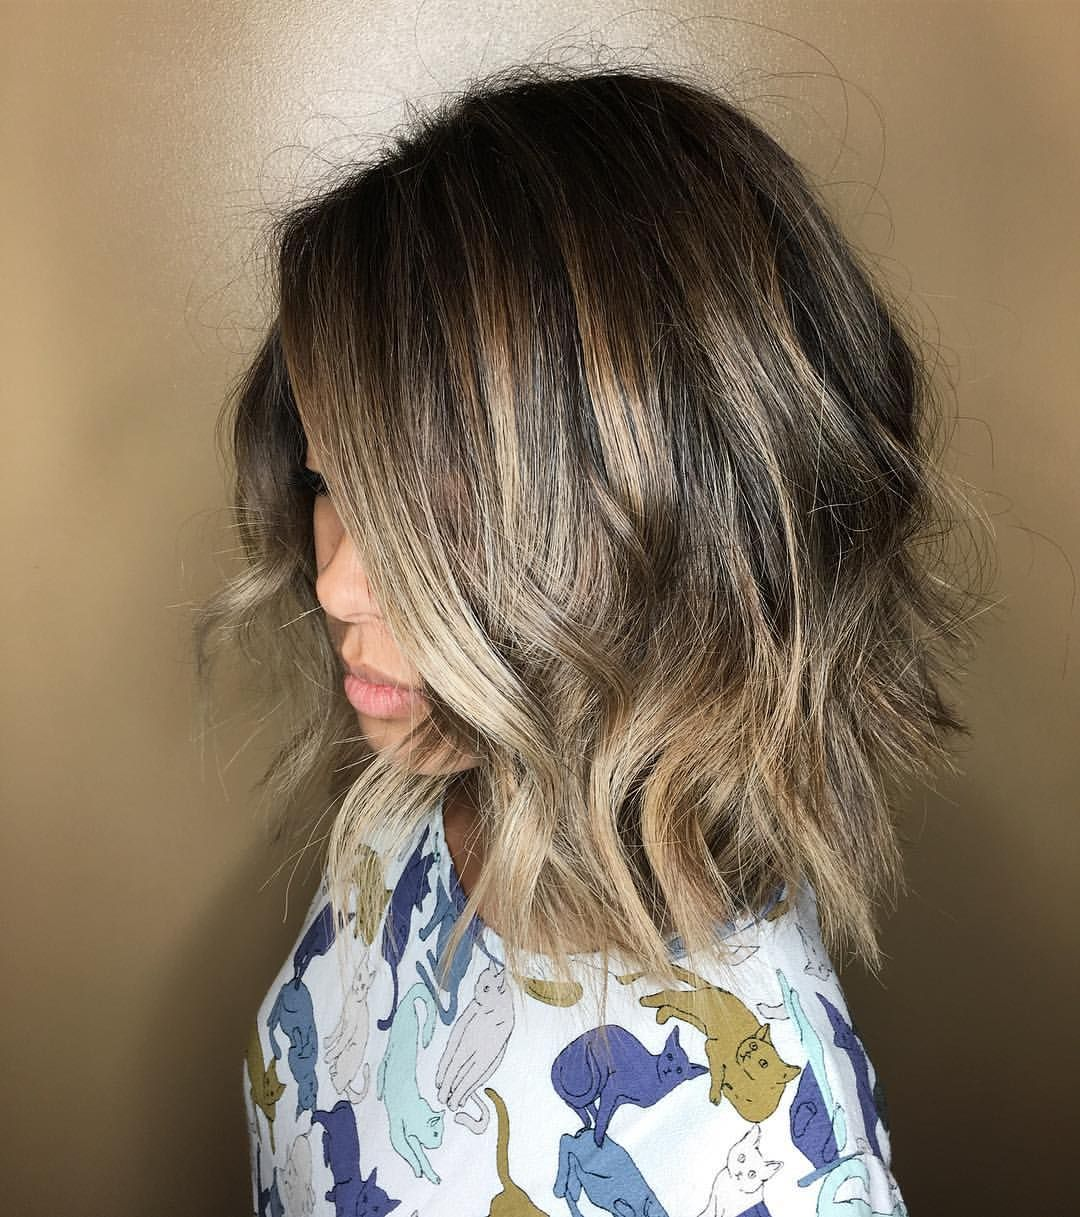 Pin by Gabriela Ros on Rocky Barnes hair inspiration